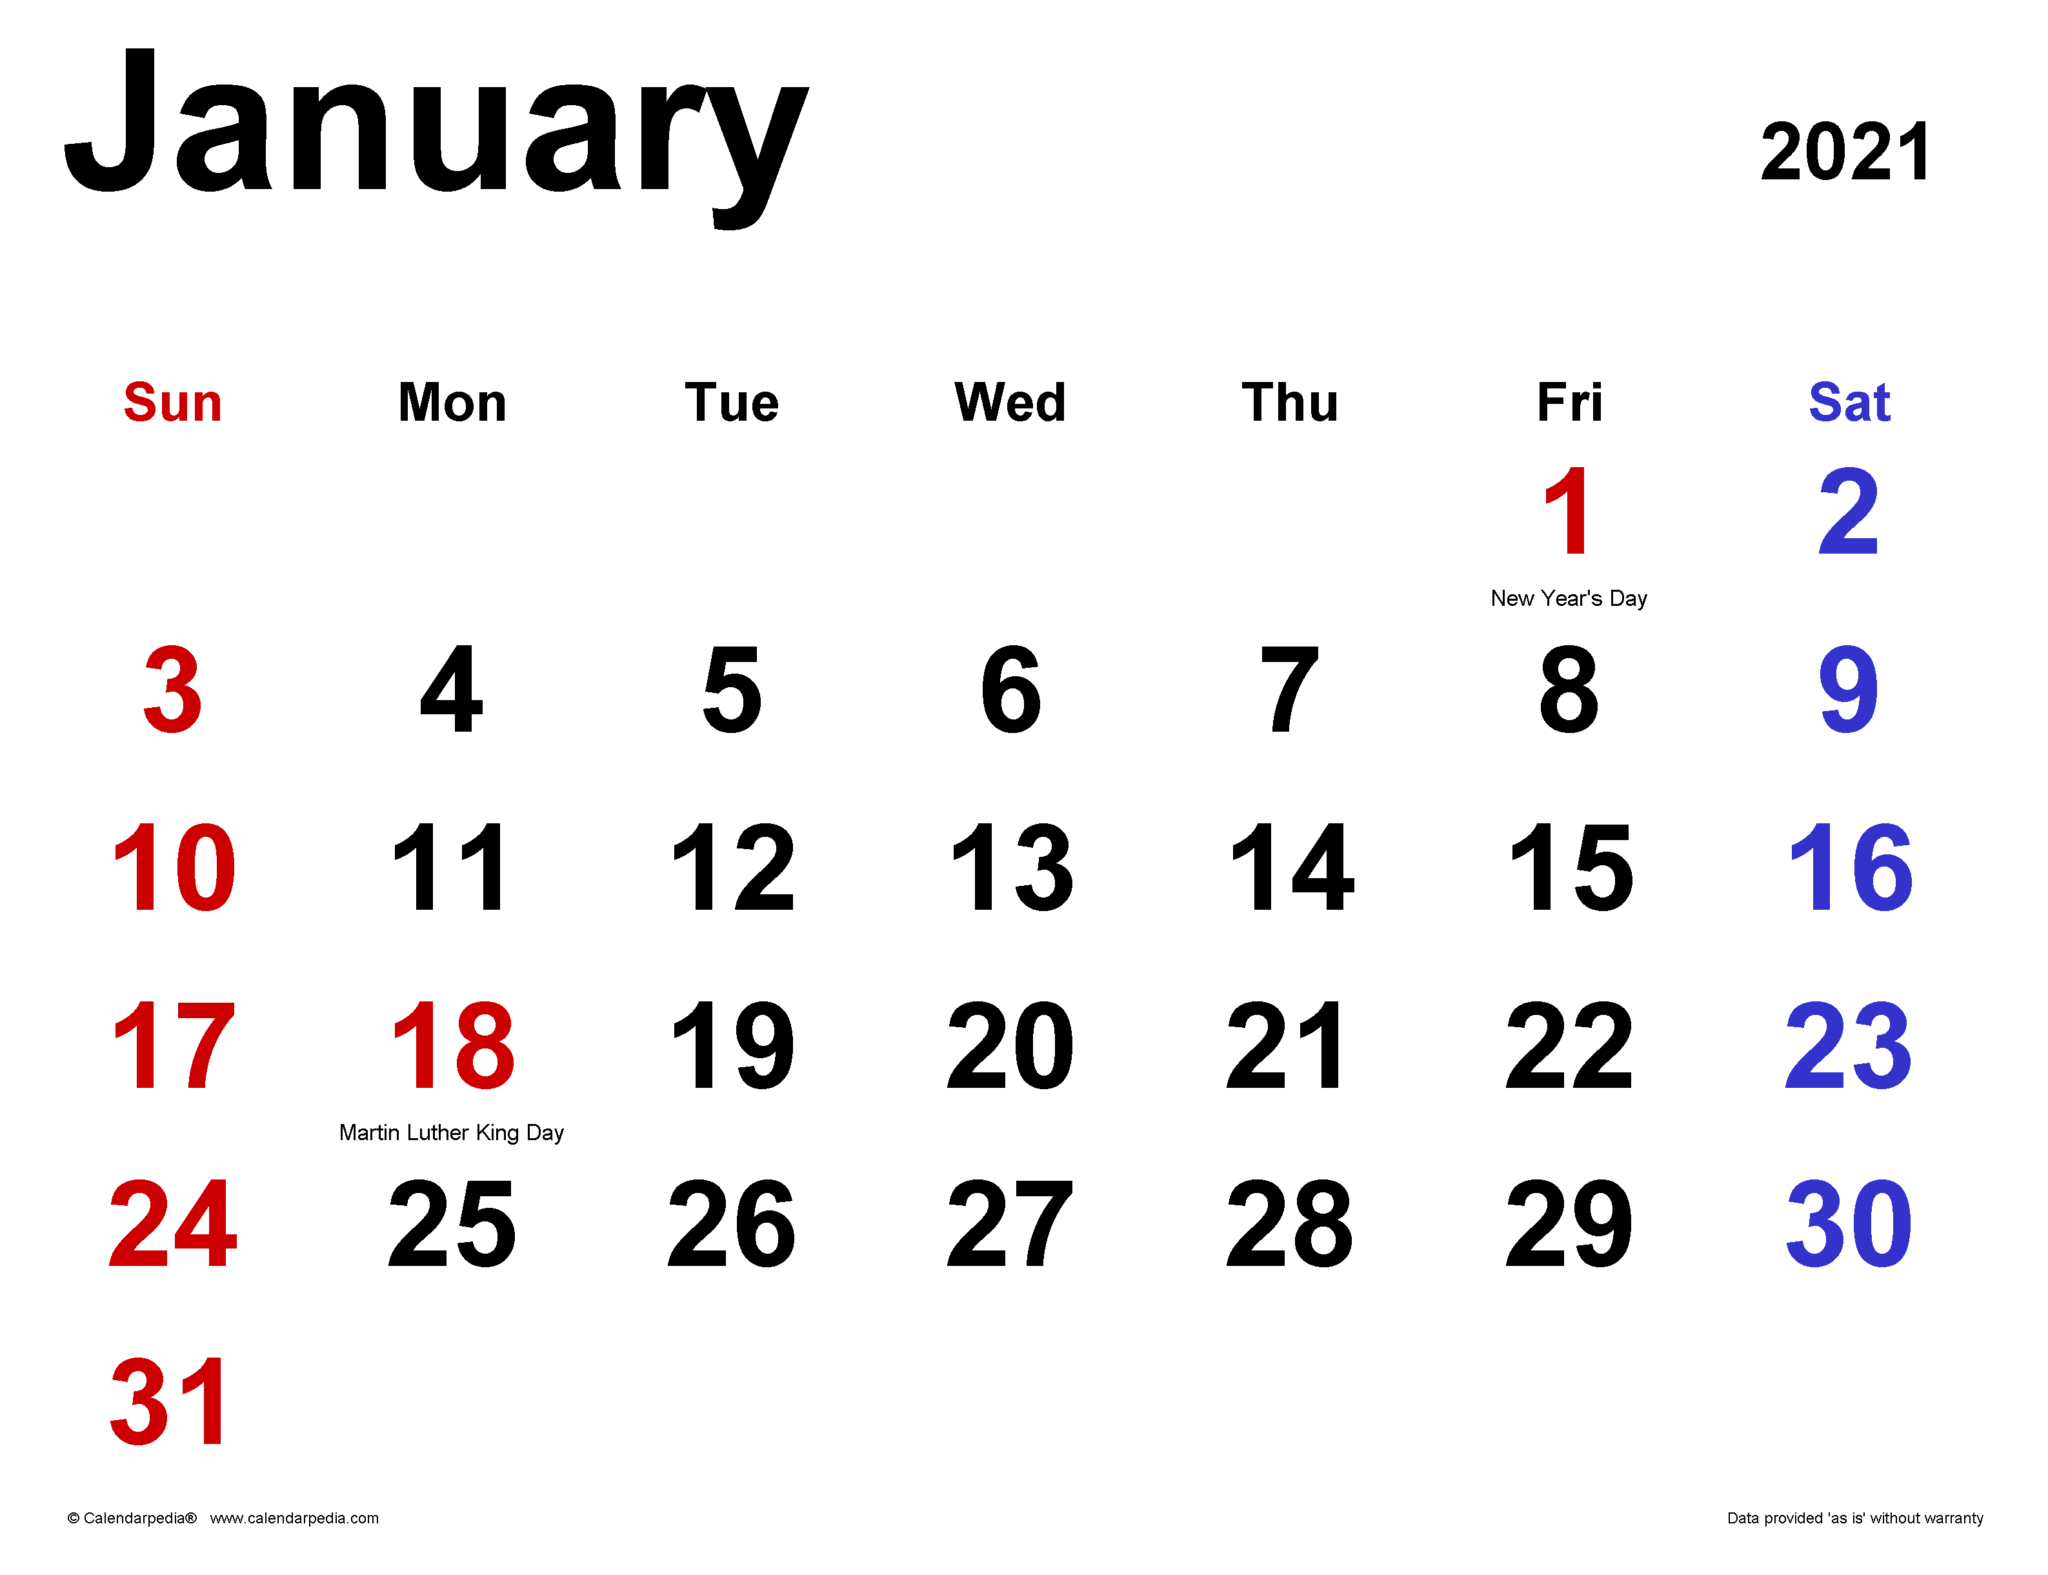 January 2021 Calendar | Templates For Word, Excel And Pdf inside Shift Schedule 2021